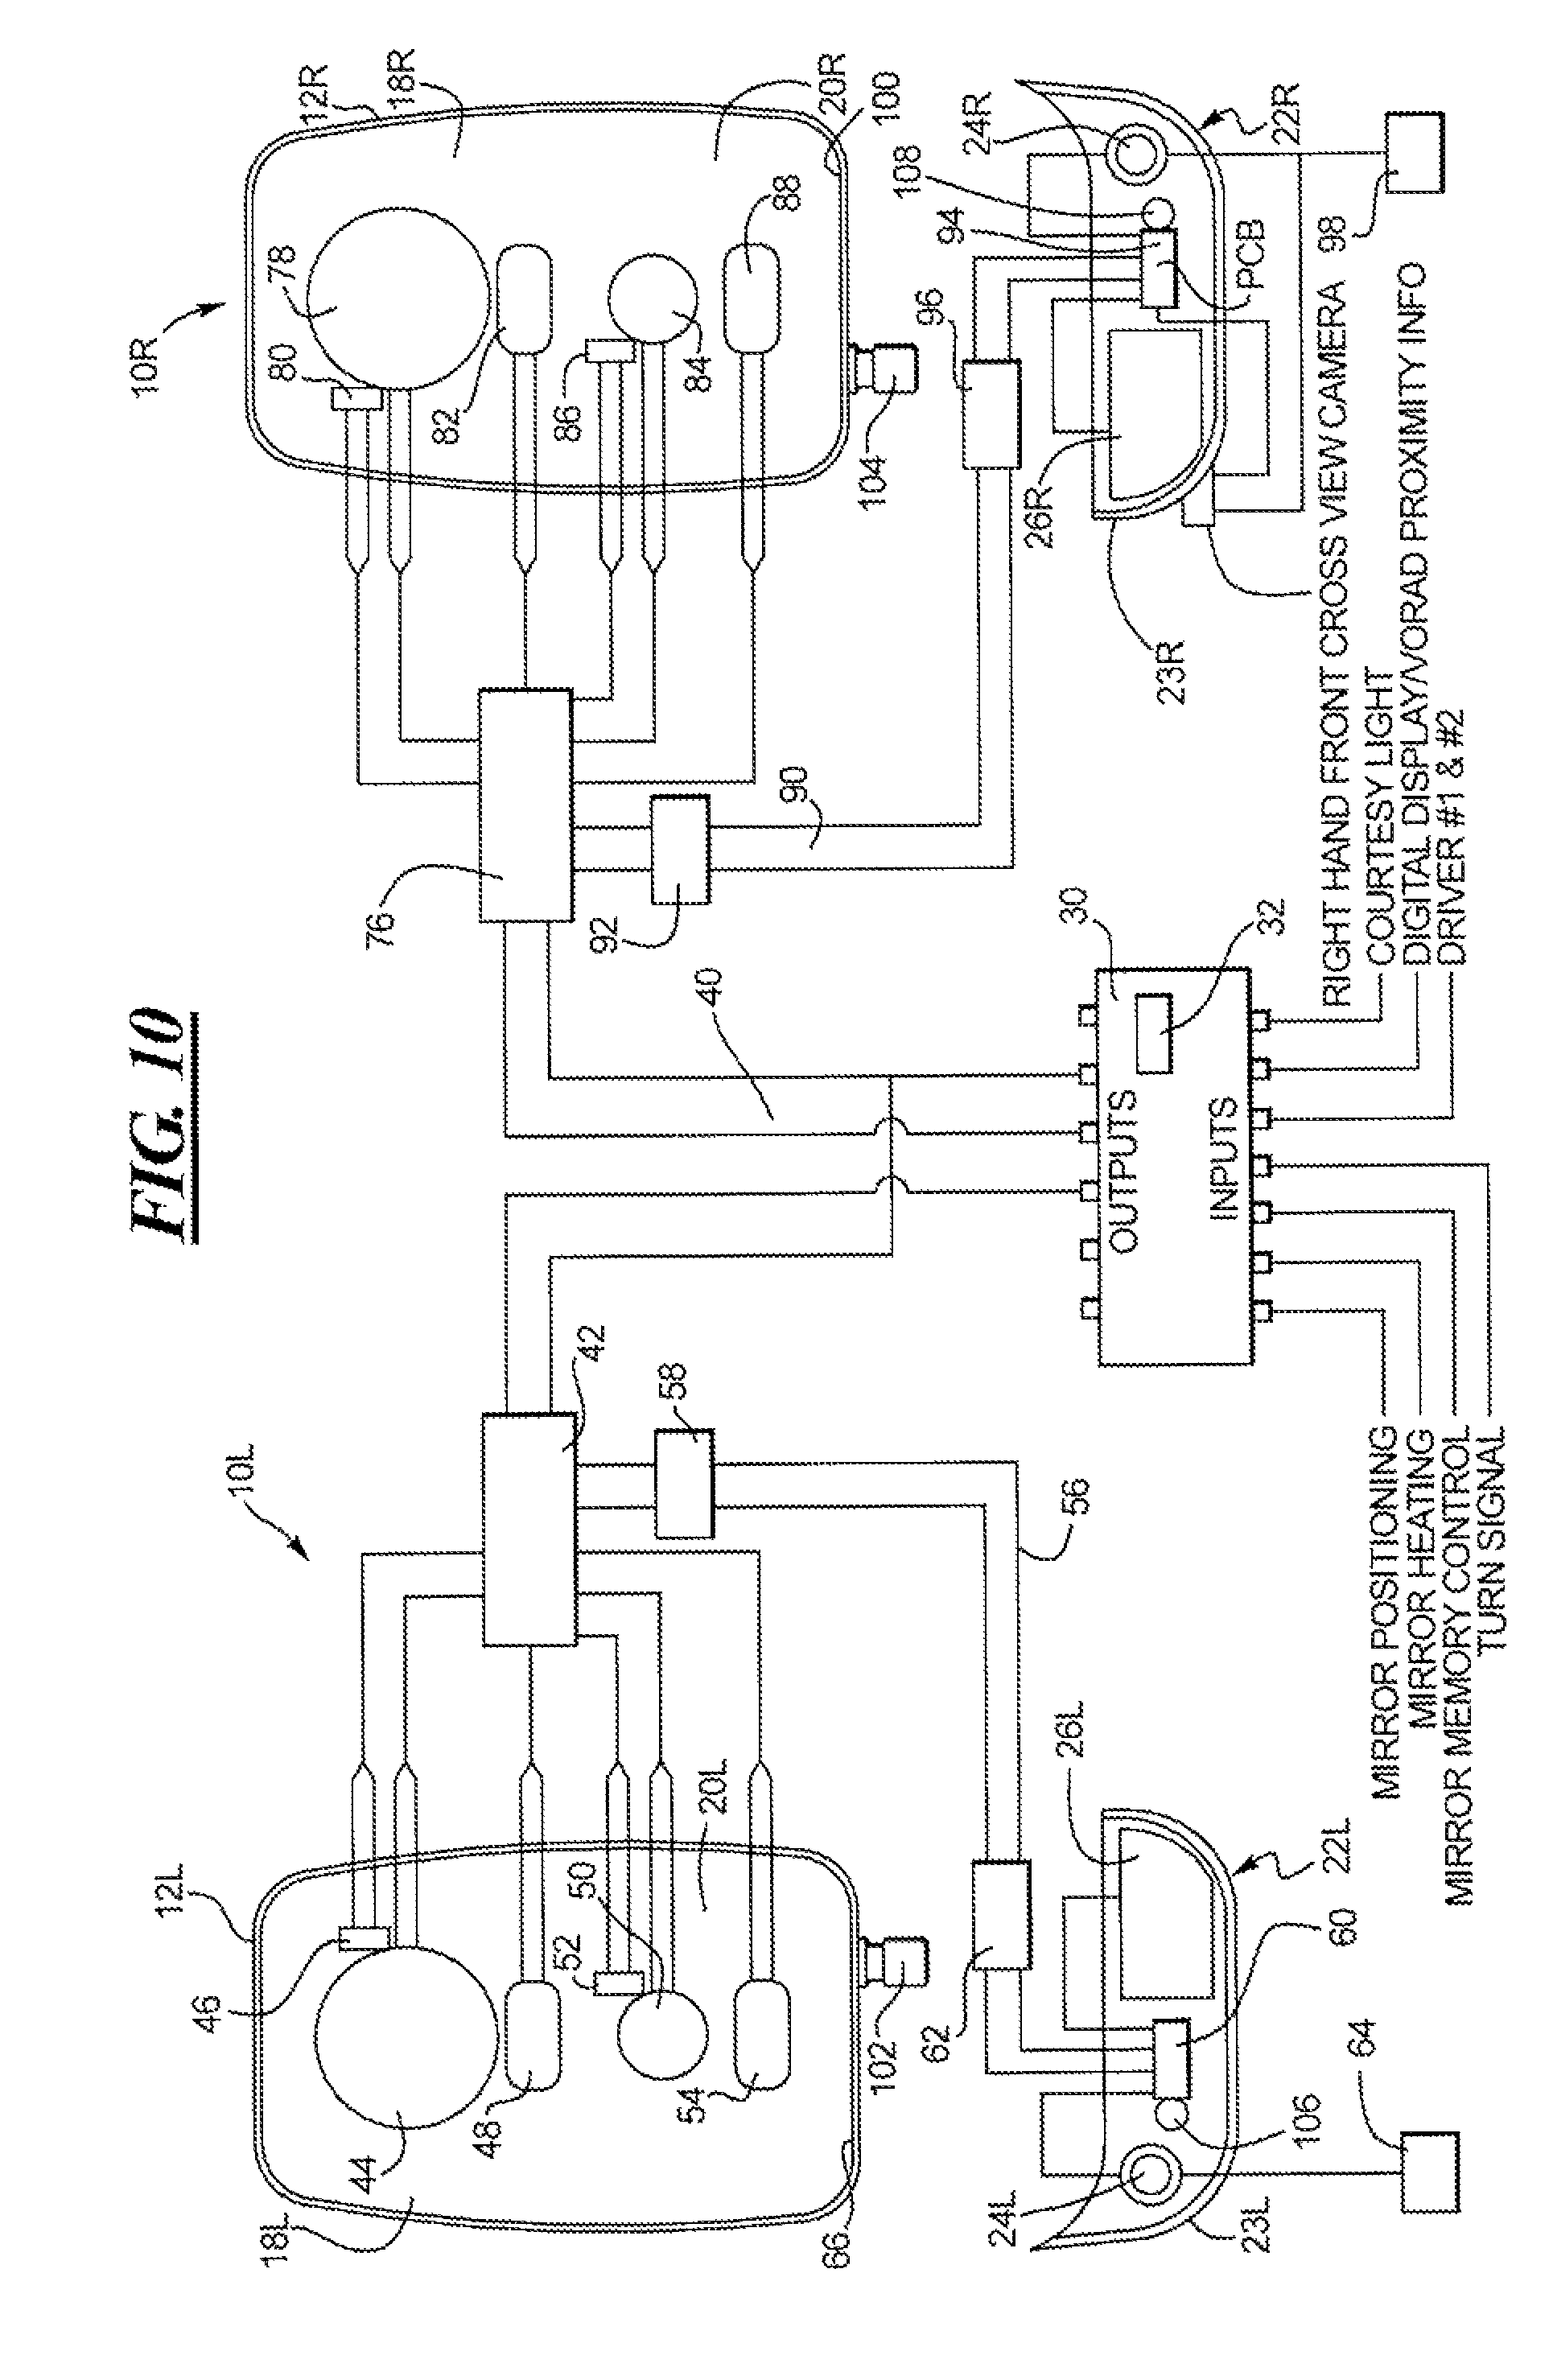 US08602573 20131210 D00007 patent us8602573 electronics module for mirrors google patents velvac mirror wiring diagram at bakdesigns.co